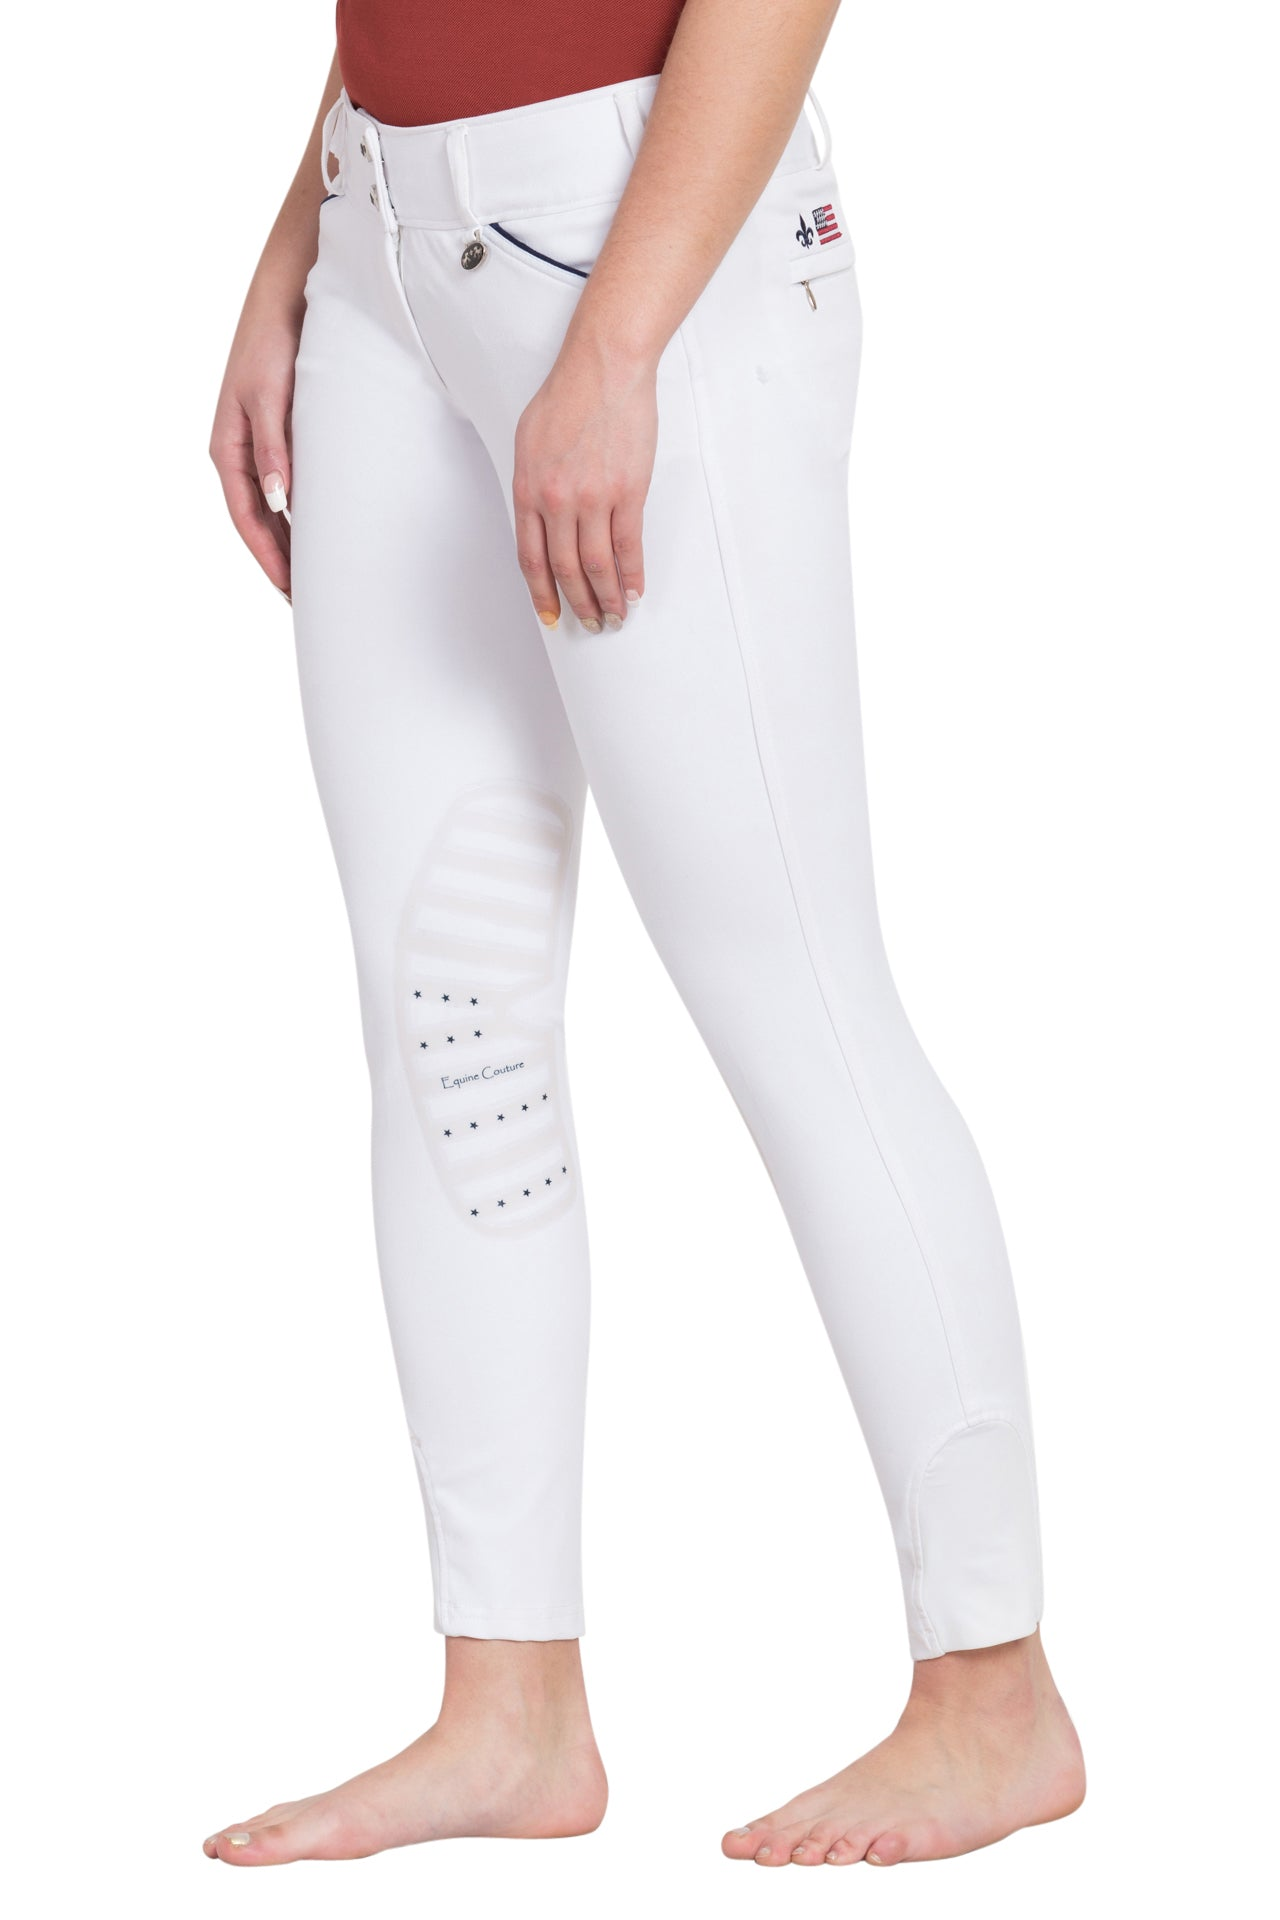 Equine Couture Ladies Brittni Silicone Knee Patch Breeches_1